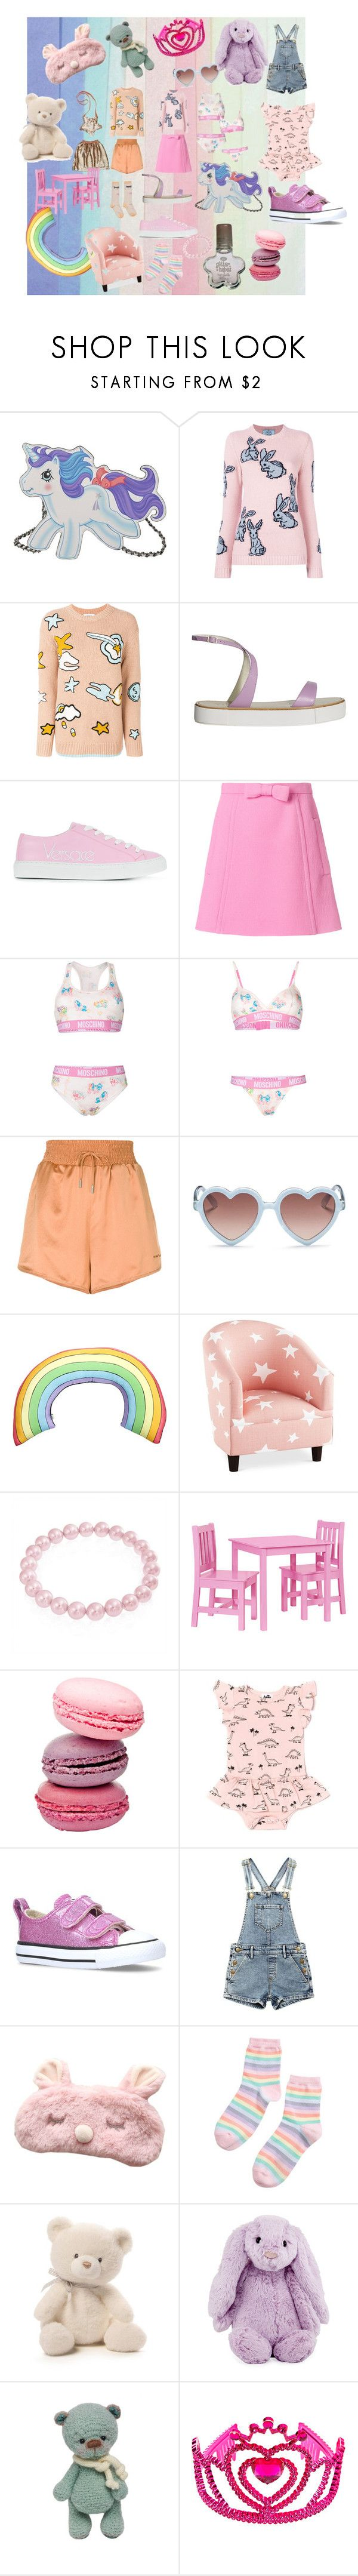 """""""Kidcore"""" by bellafeye on Polyvore featuring Moschino, Prada, Coach, TIBI, Versace, Miu Miu, Off-White, Sons + Daughters, Silken Favours and Sparrow & Wren"""